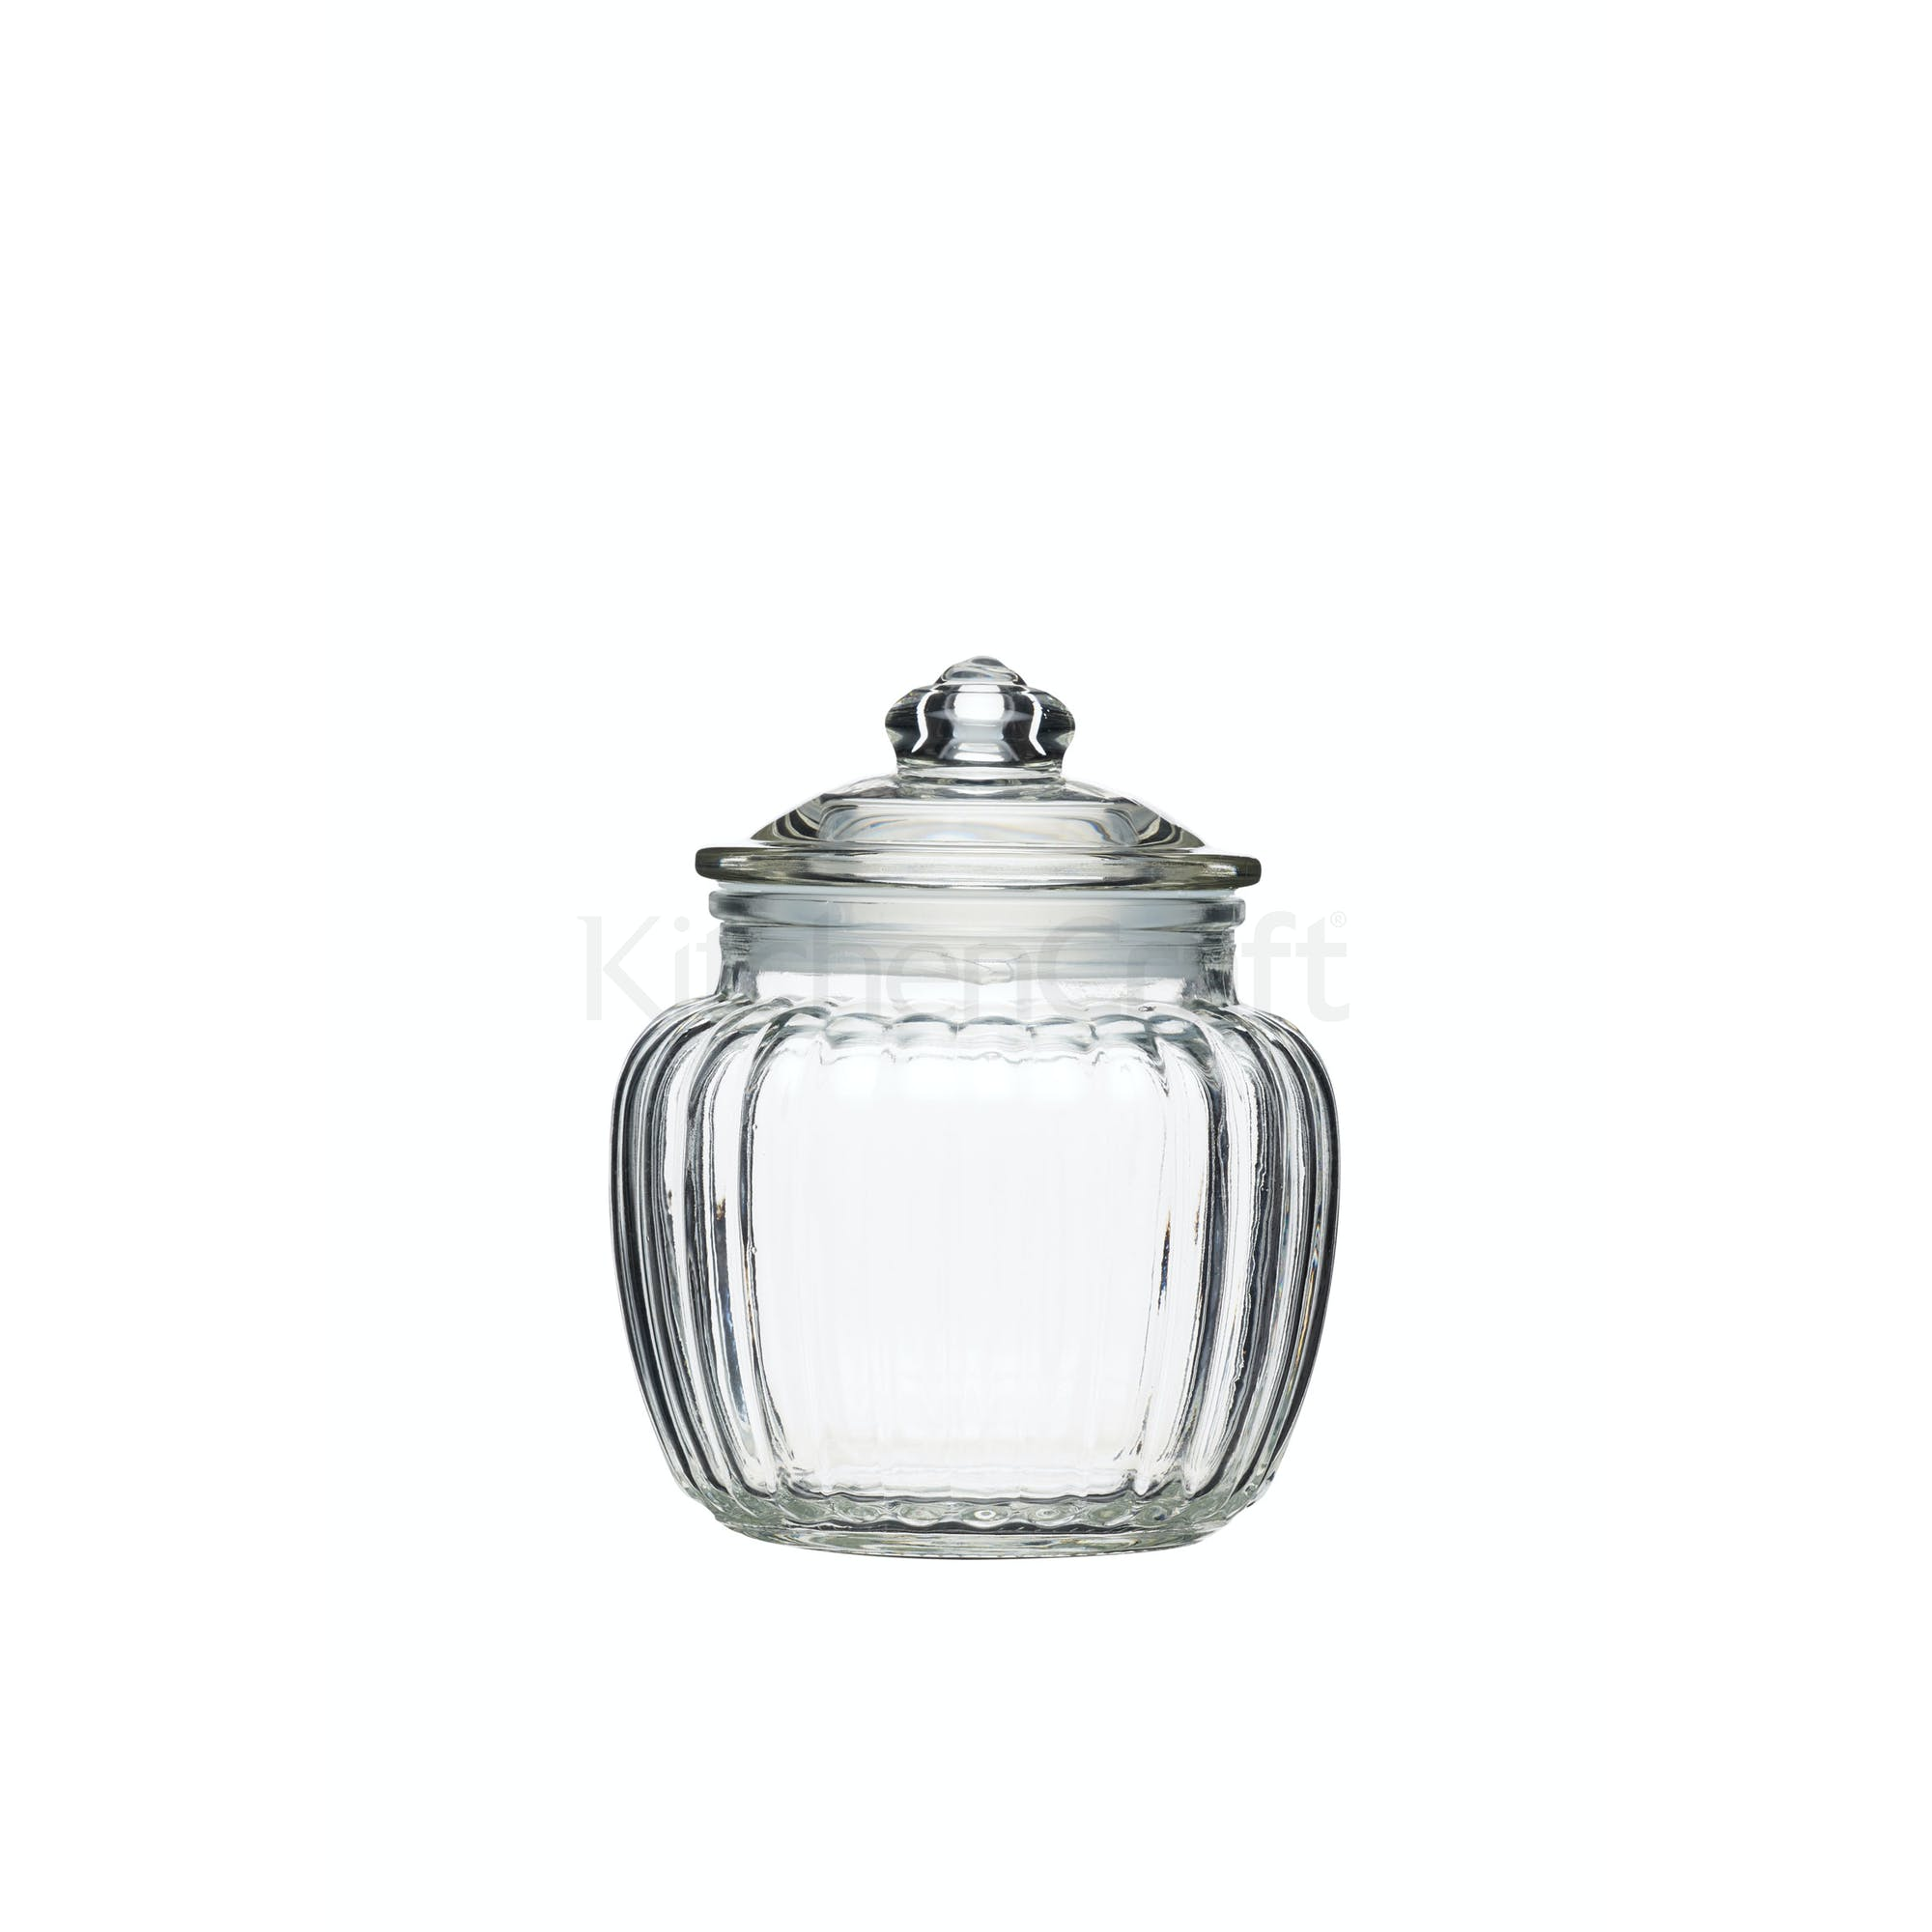 592c2bbcb59b Home Made Multi-Purpose Small Glass Storage Jar | Storage Containers ...